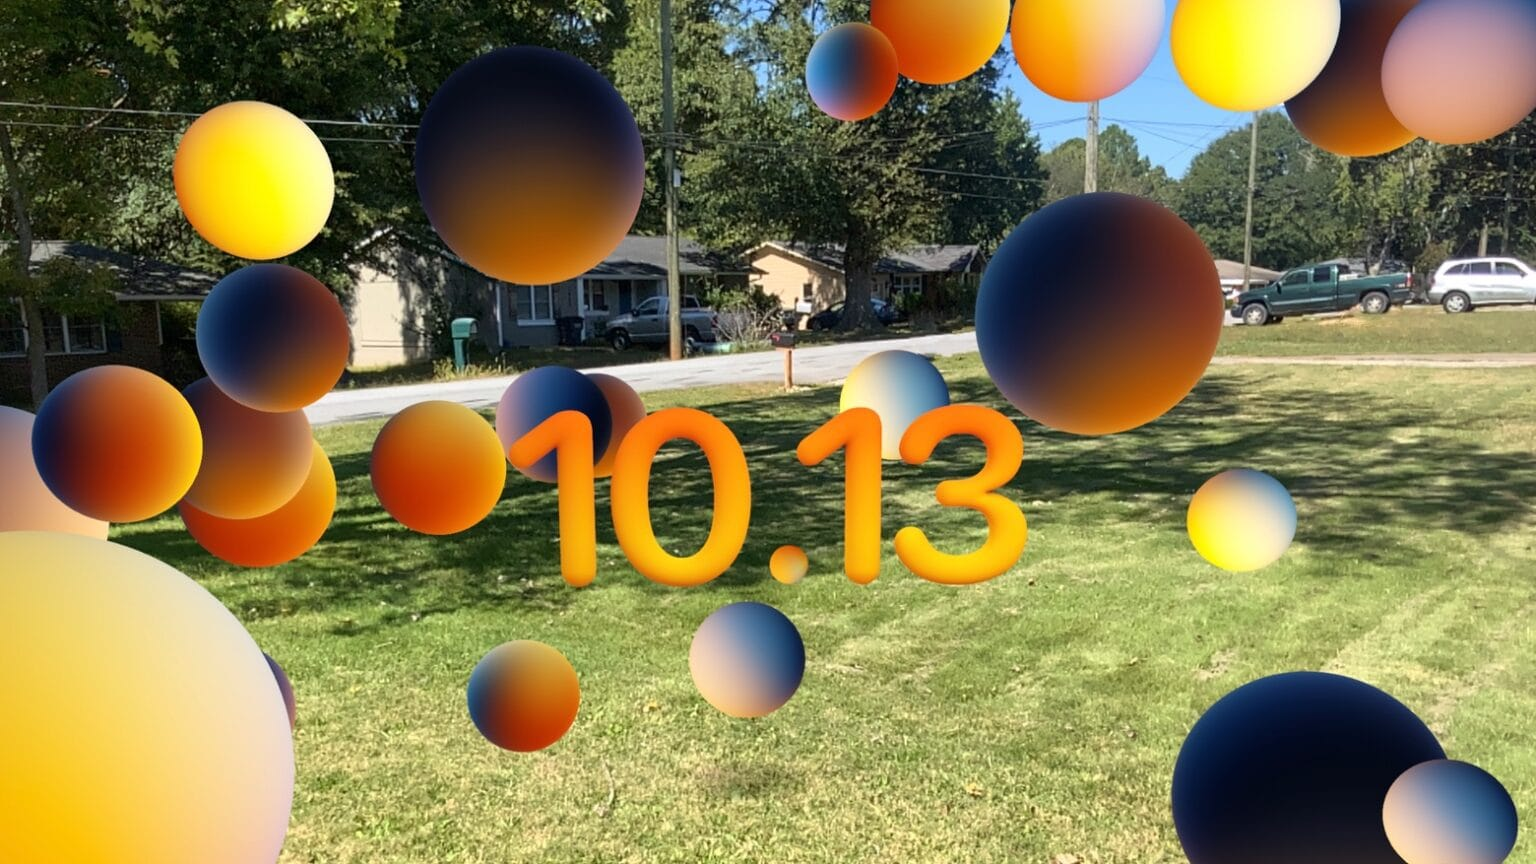 The invite to the Apple October event 2020 offers an augmented-reality easter egg.